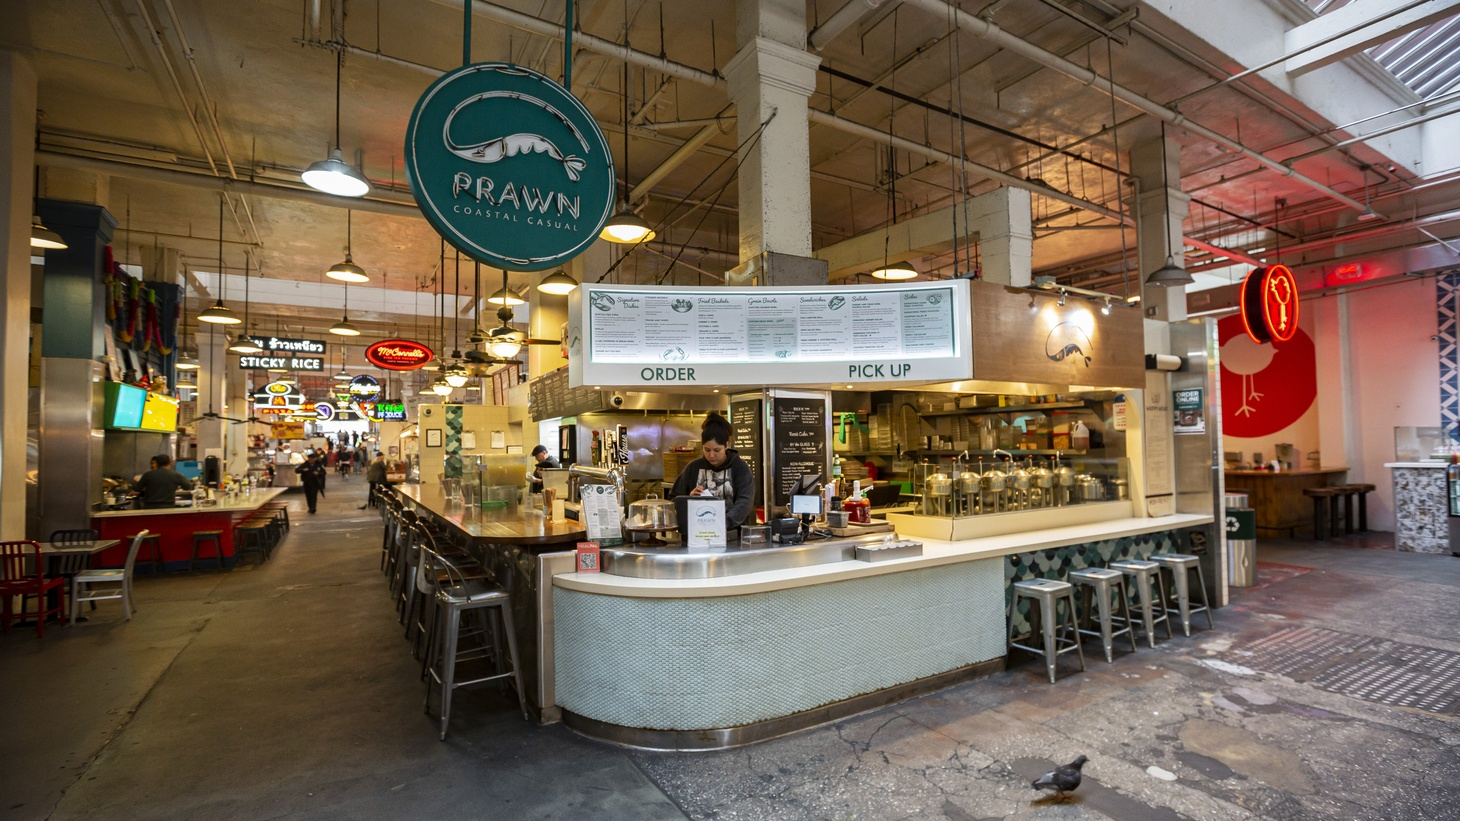 Empty seats at Prawn, a seafood restaurant inside LA's Grand Central Market.